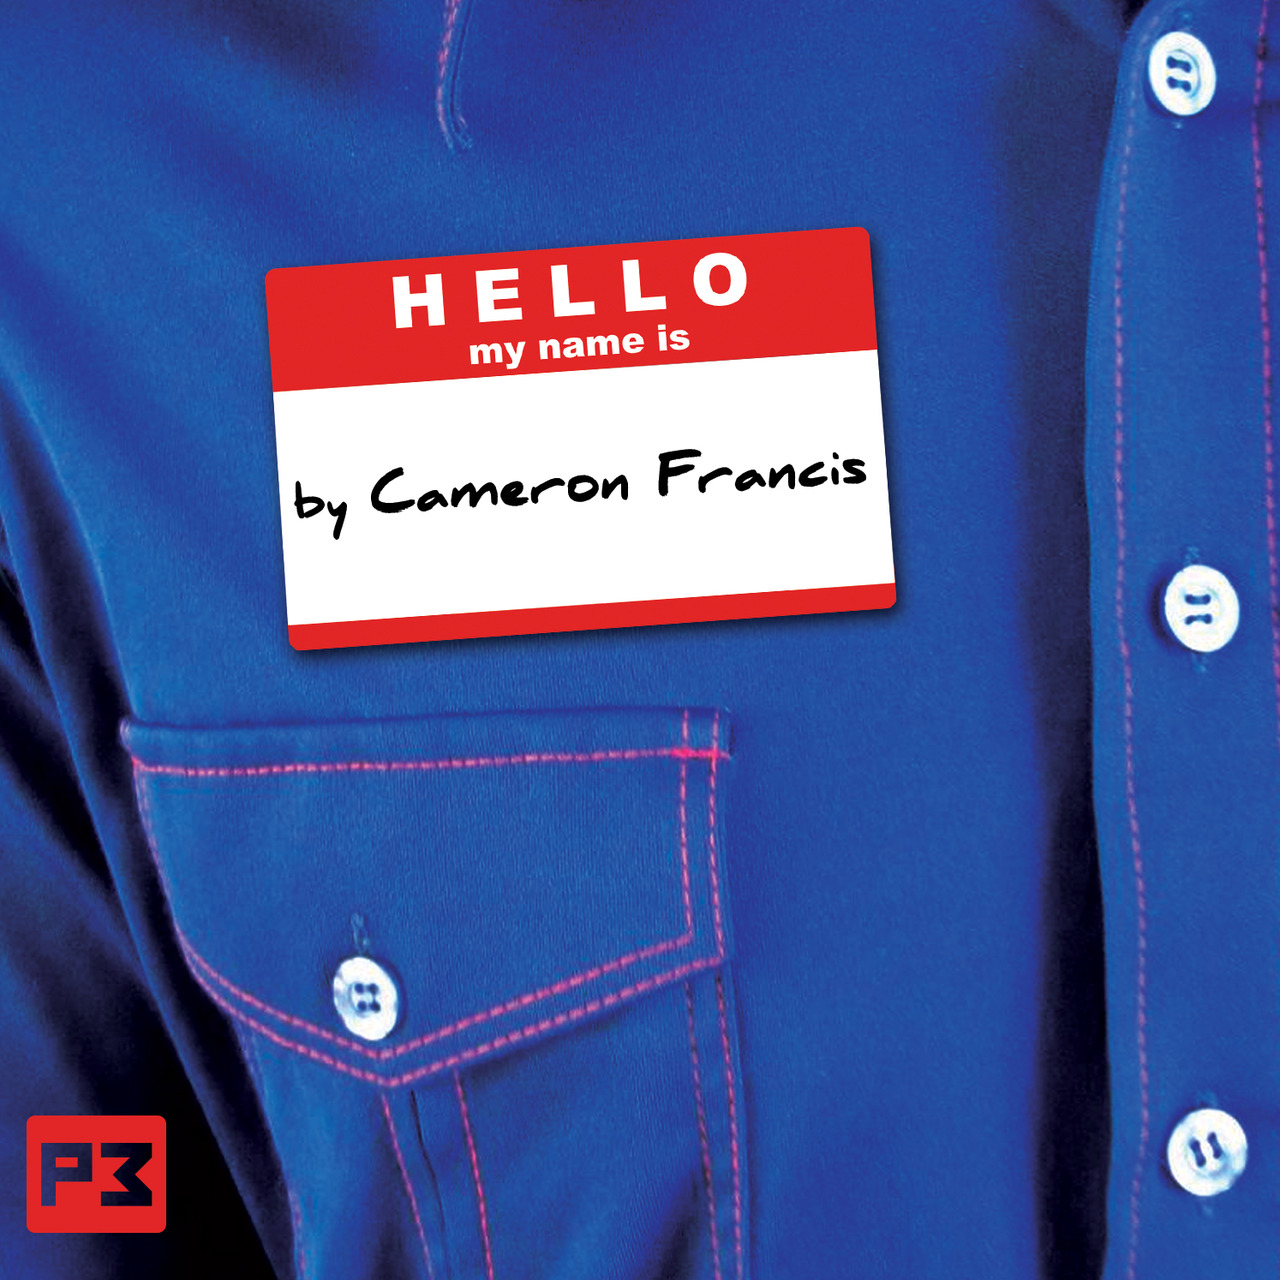 Hello My Name Is by Cameron Francis